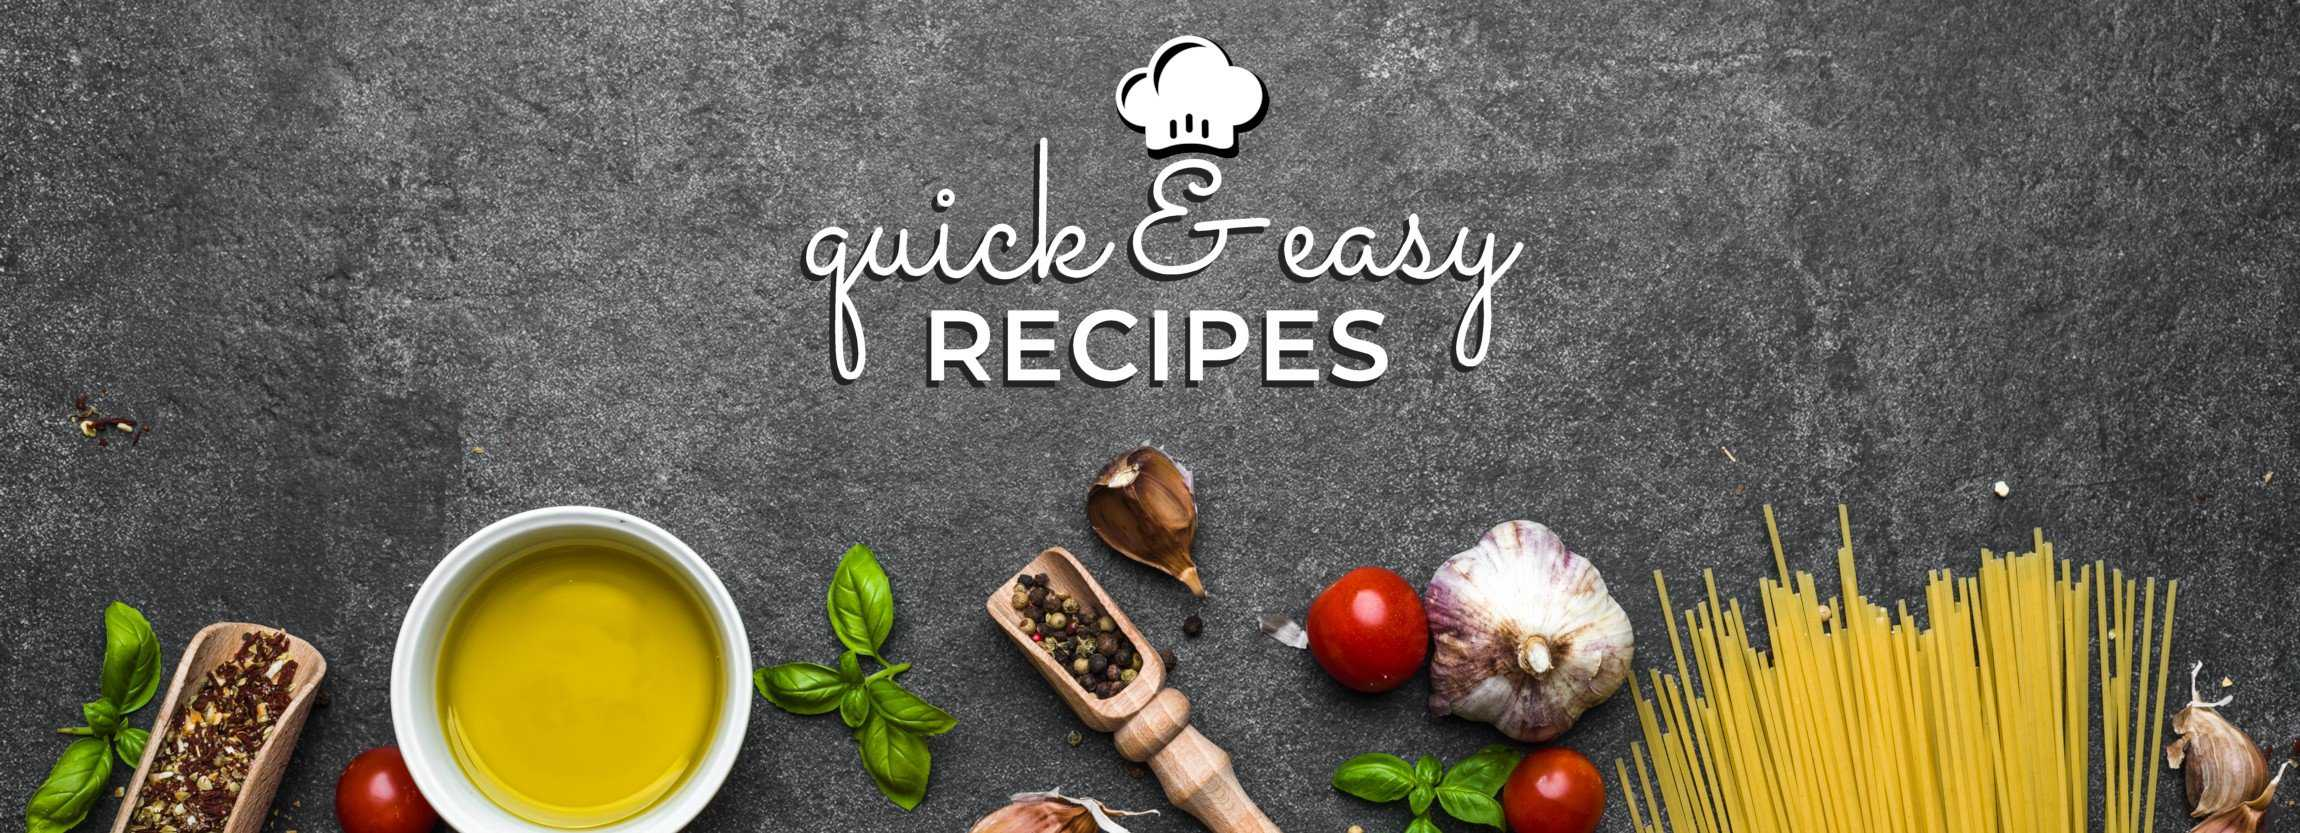 Cool Bean Cooking Quick & Easy Recipes